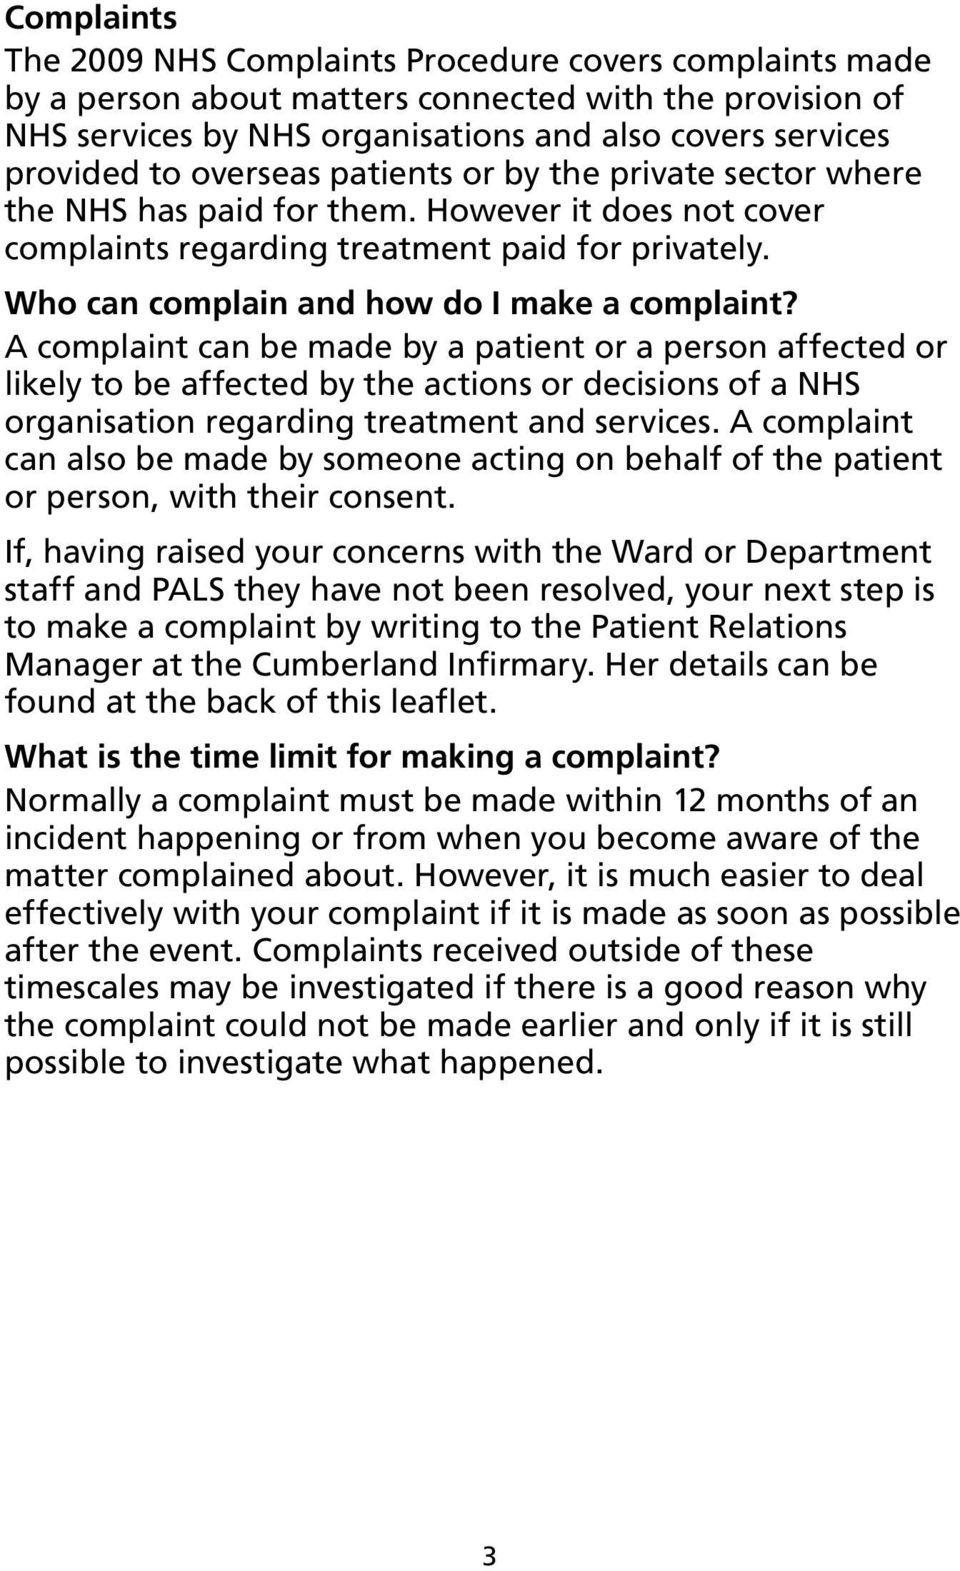 A complaint can be made by a patient or a person affected or likely to be affected by the actions or decisions of a NHS organisation regarding treatment and services.